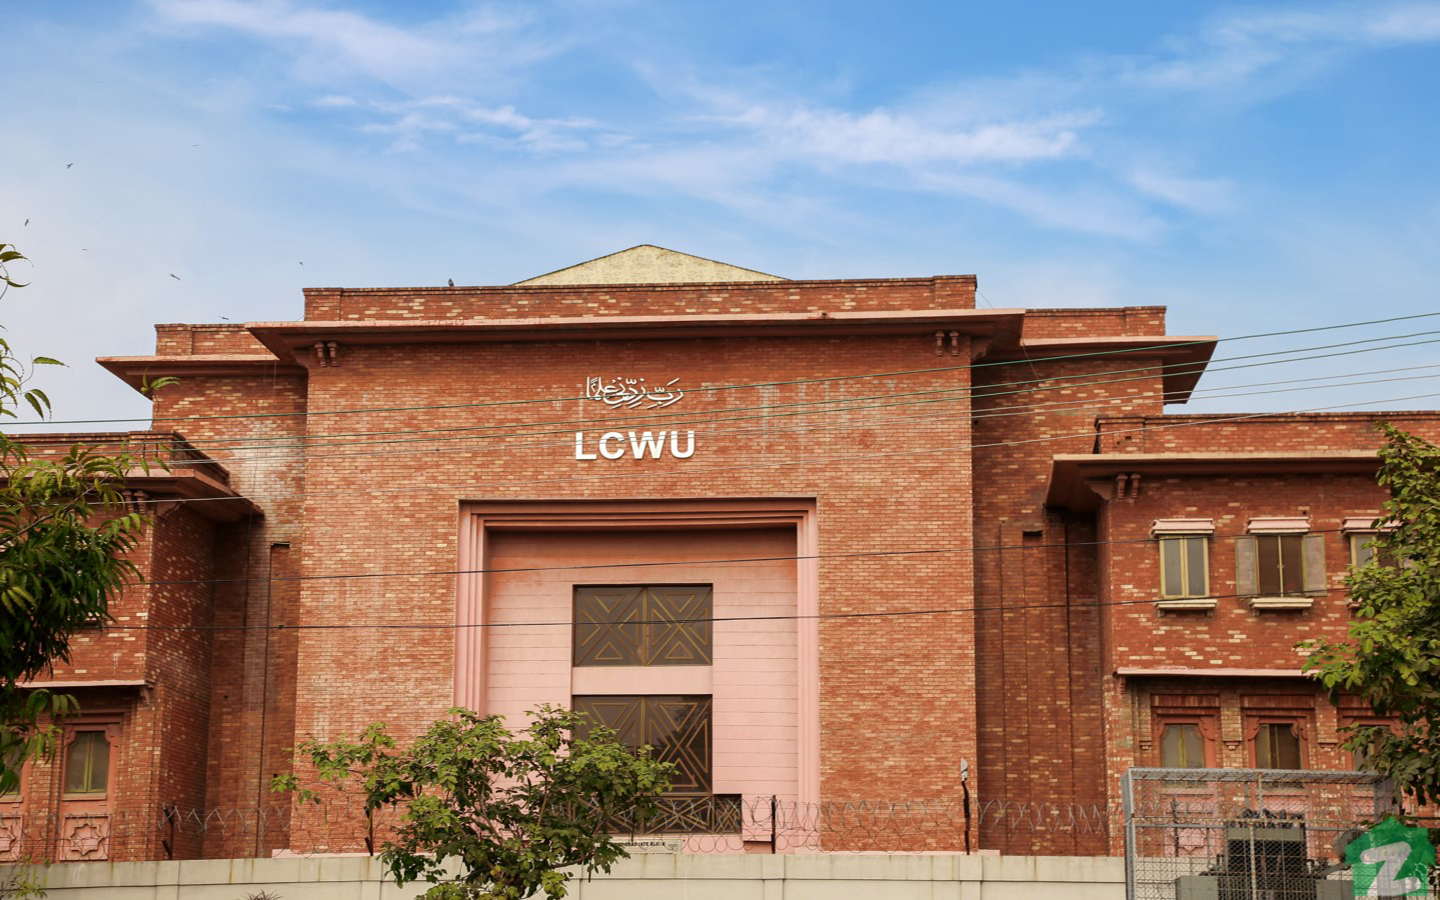 Jail Road Lahore hosts several primary and secondary schools in its neighbouring societies.